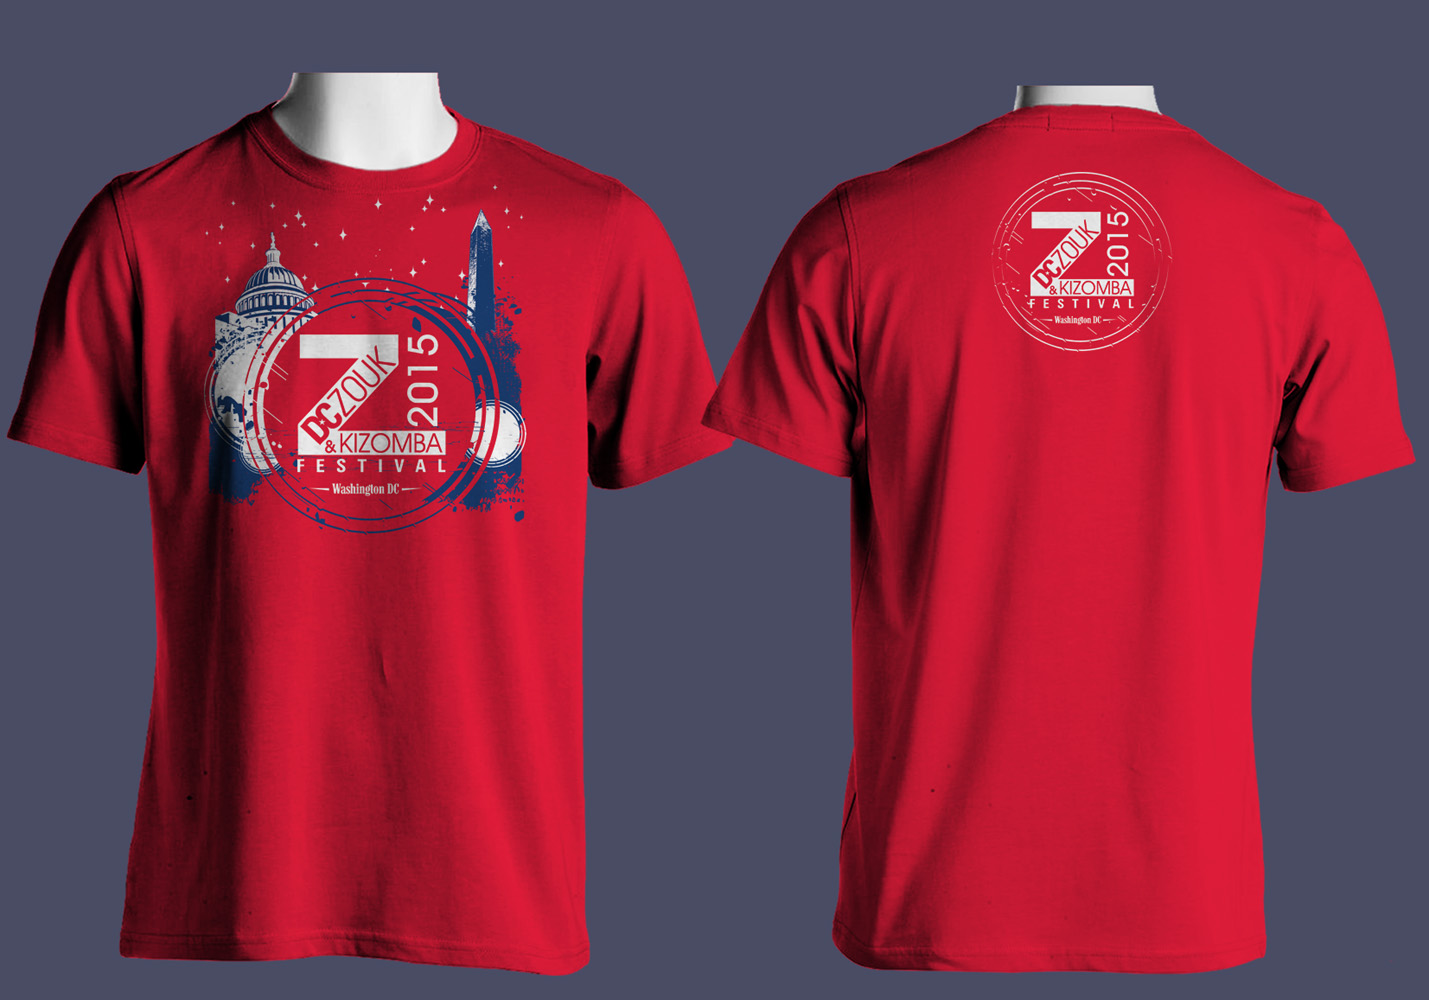 Serious Conservative Festival T Shirt Design For Dczoukfestival By